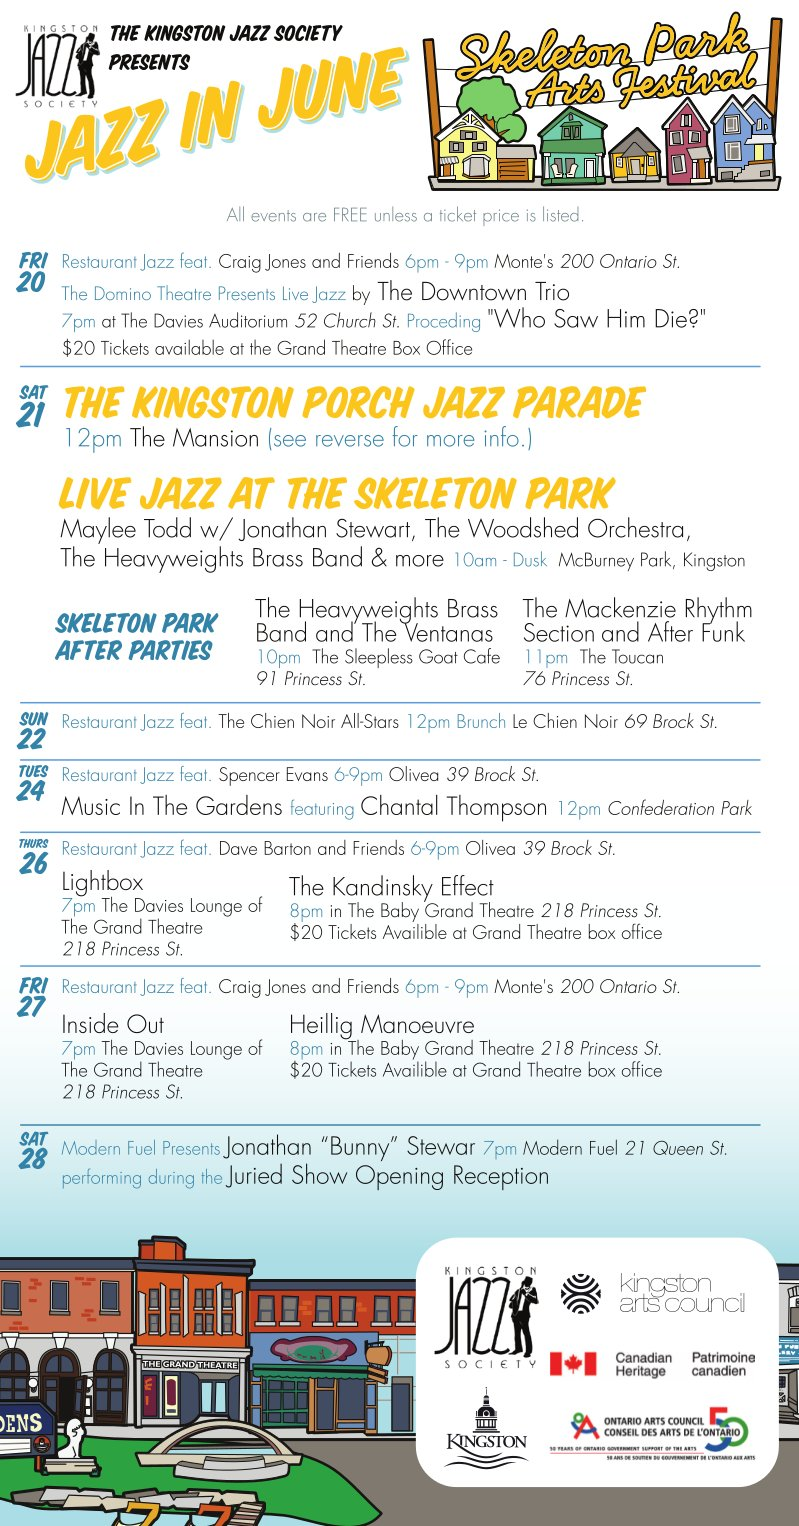 Jazz In June at the SPAF!